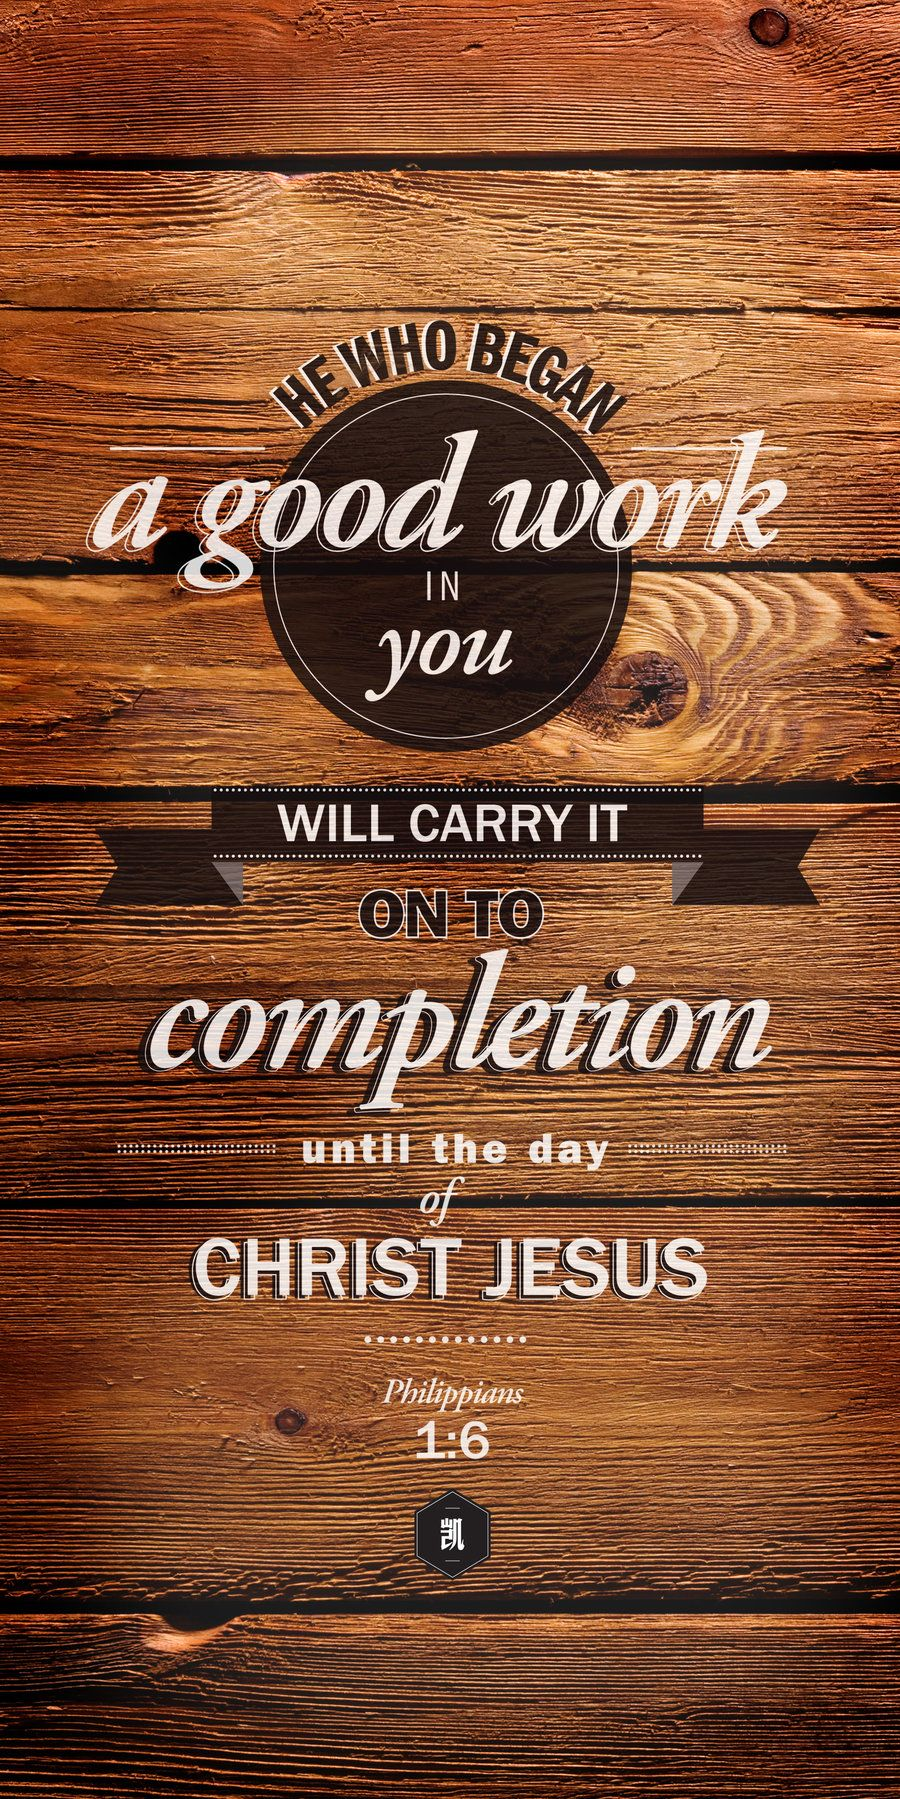 philippians 1 6 he who began a good work in you will carry it on